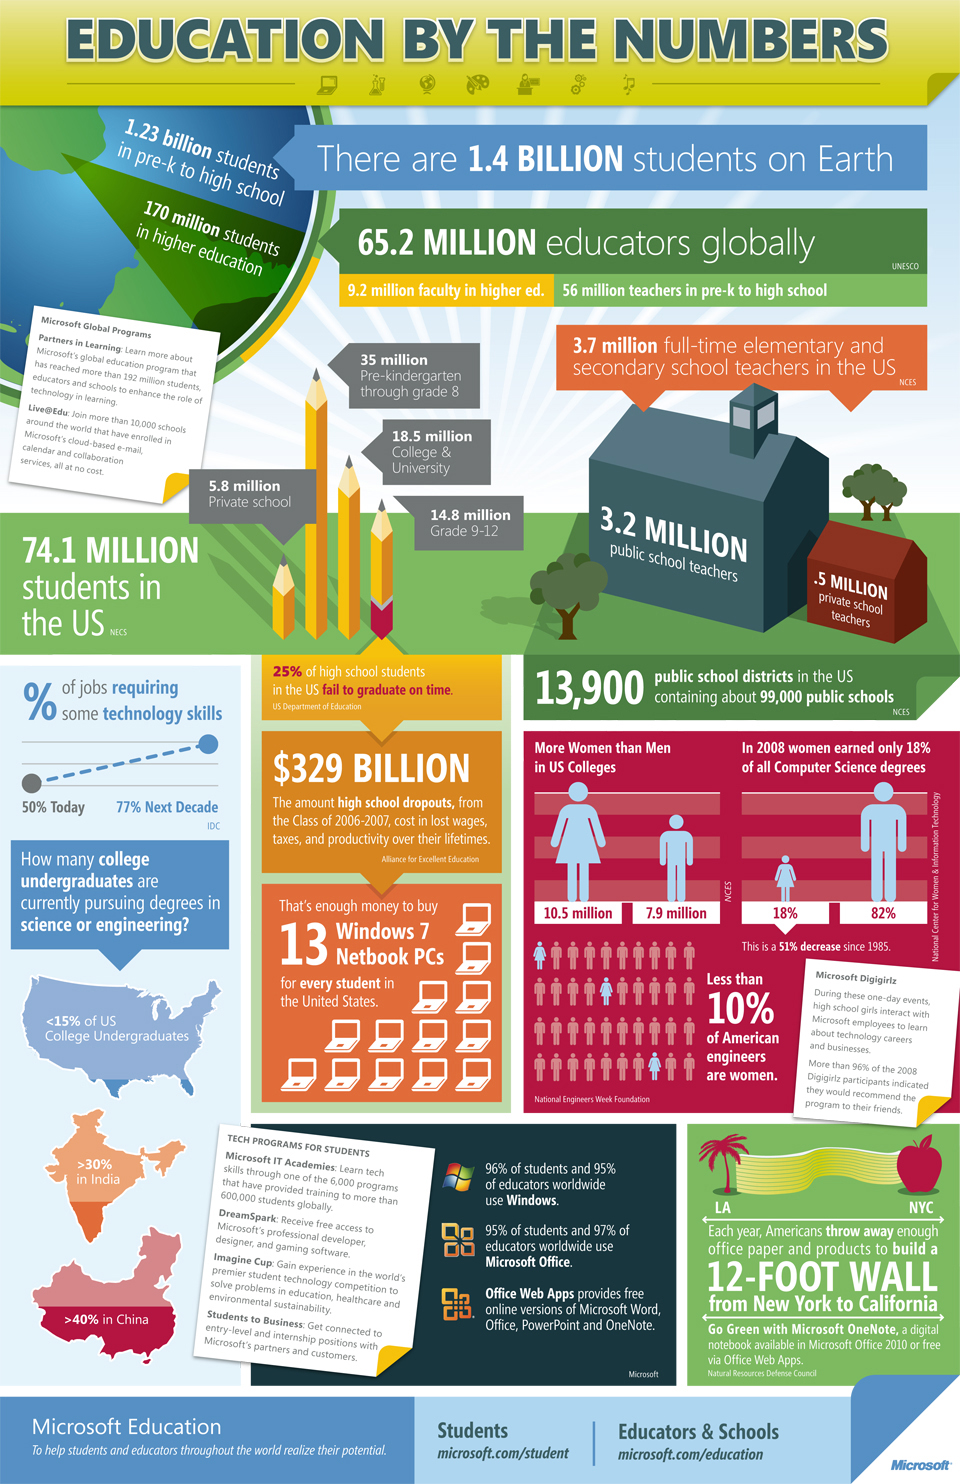 Using infographics in education